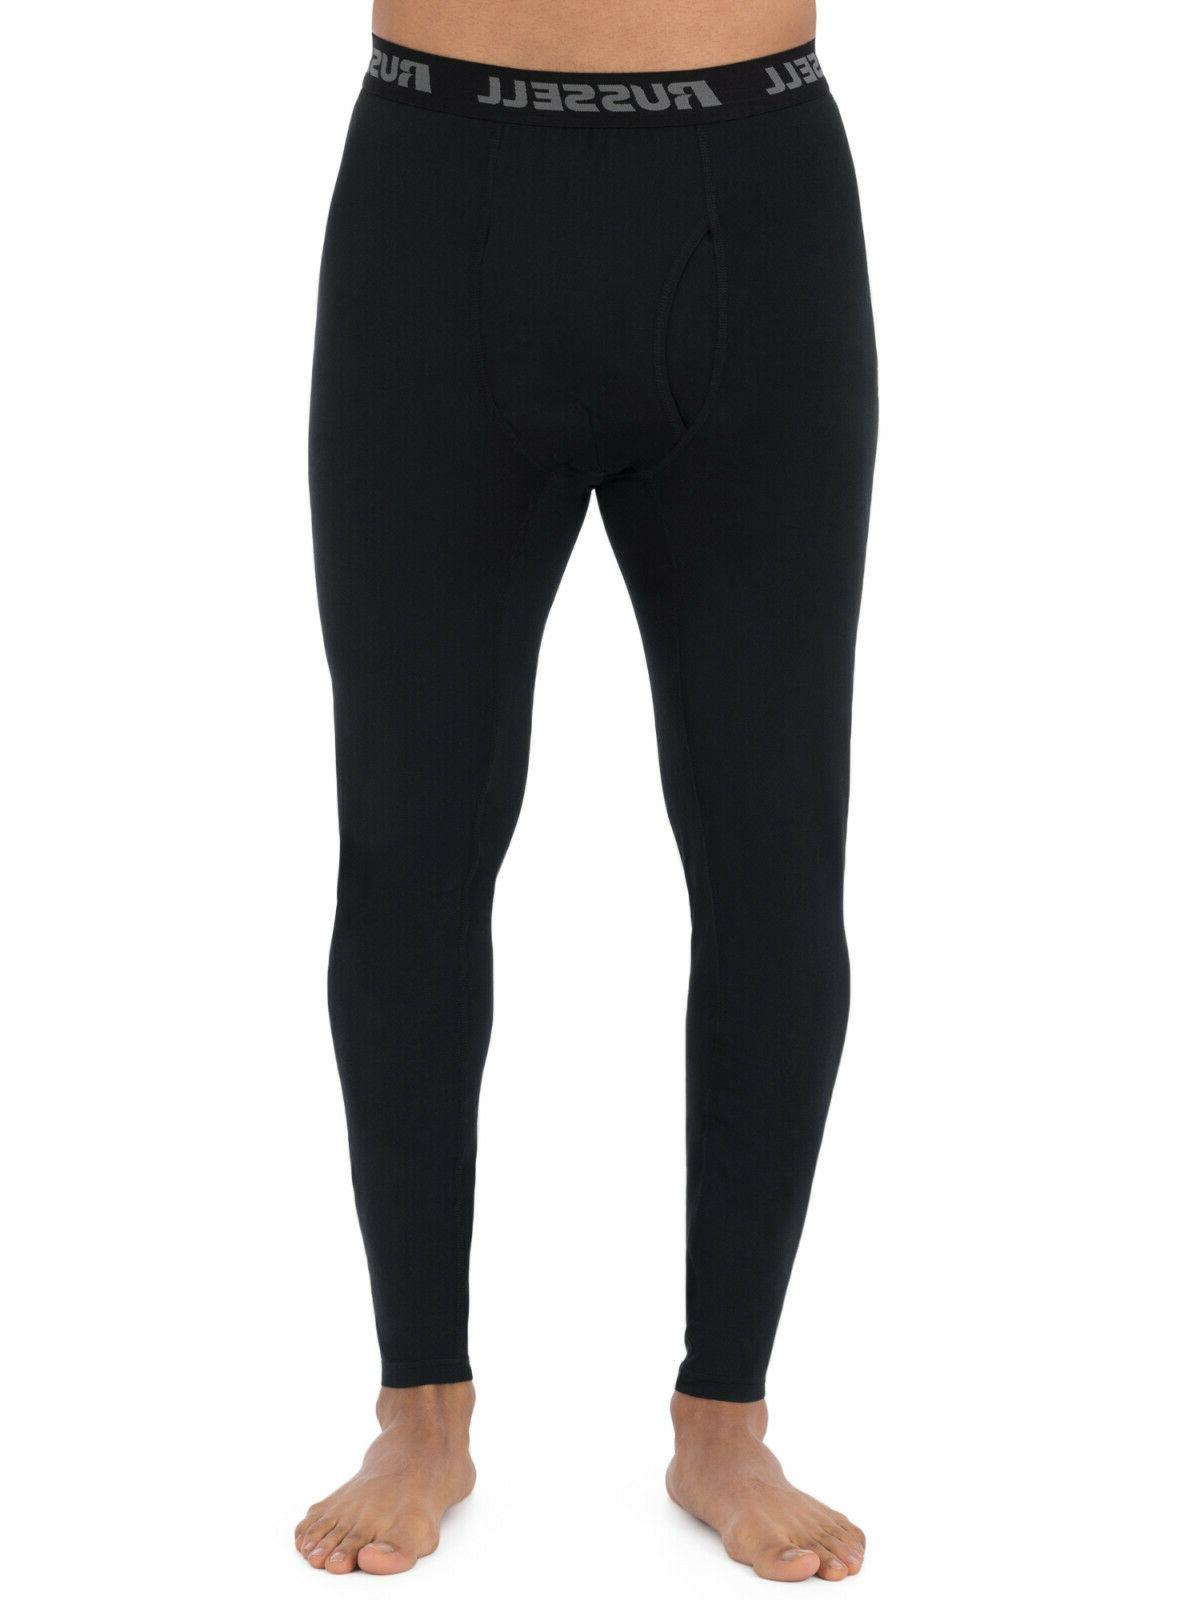 new mens russell l2 black base layer